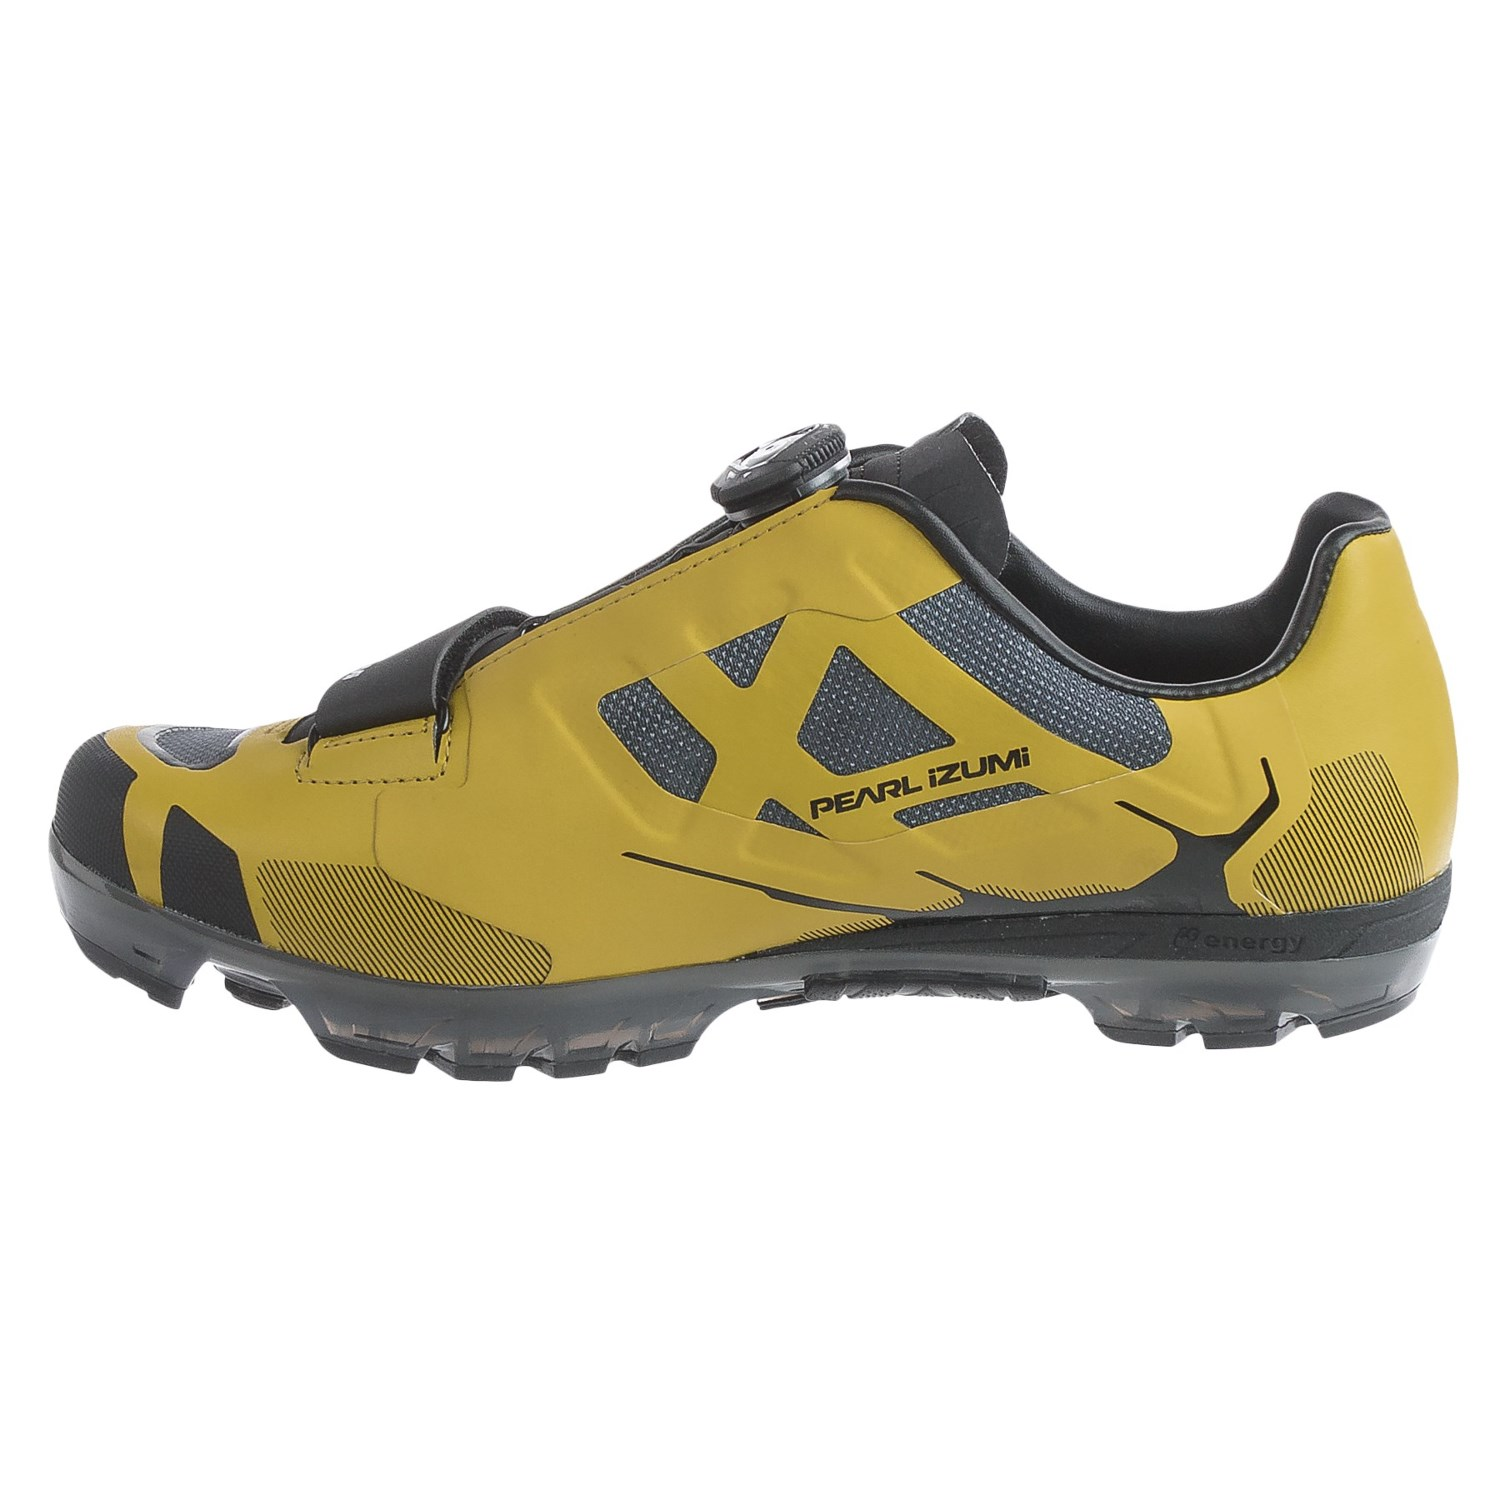 Pearl Izumi X Project   Mountain Bike Shoes Review